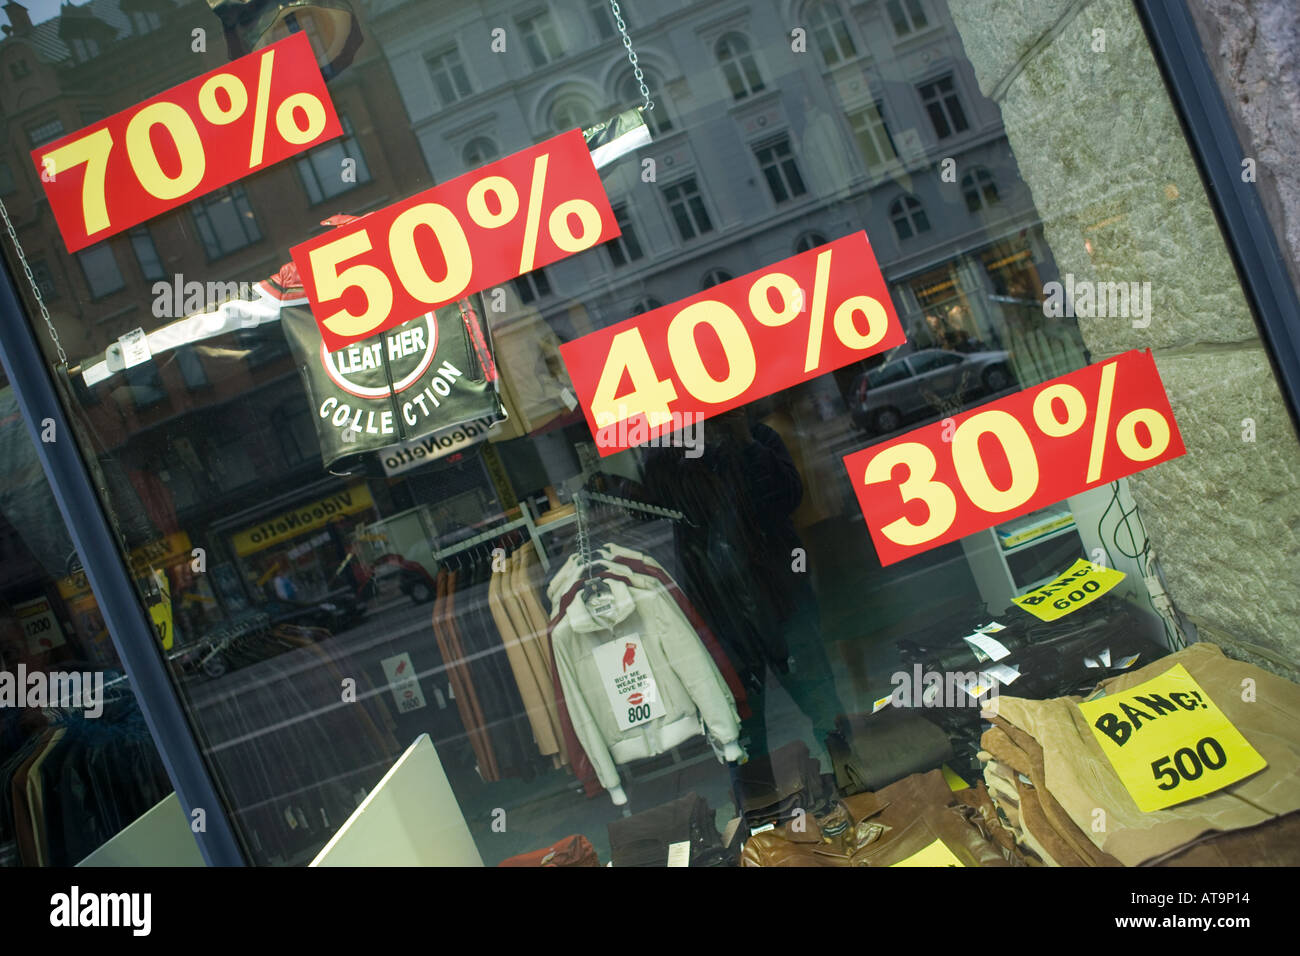 Clothing shop window Copenhagen Denmark advertising discounts - Stock Image